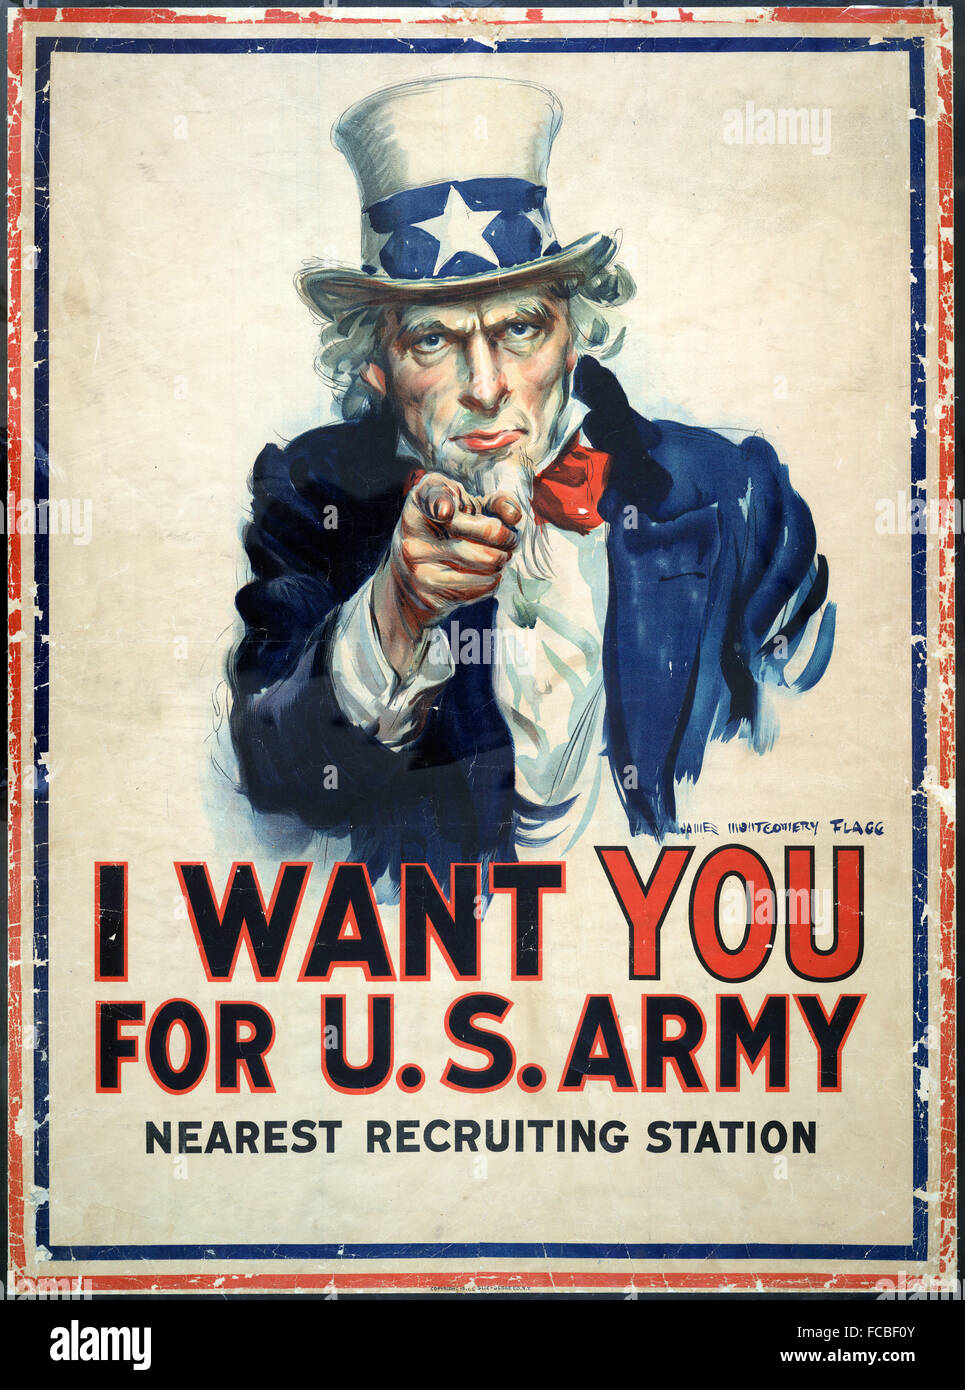 Original Uncle Sam recruiting poster for the US Army in WWI, c.1917 - Stock Image